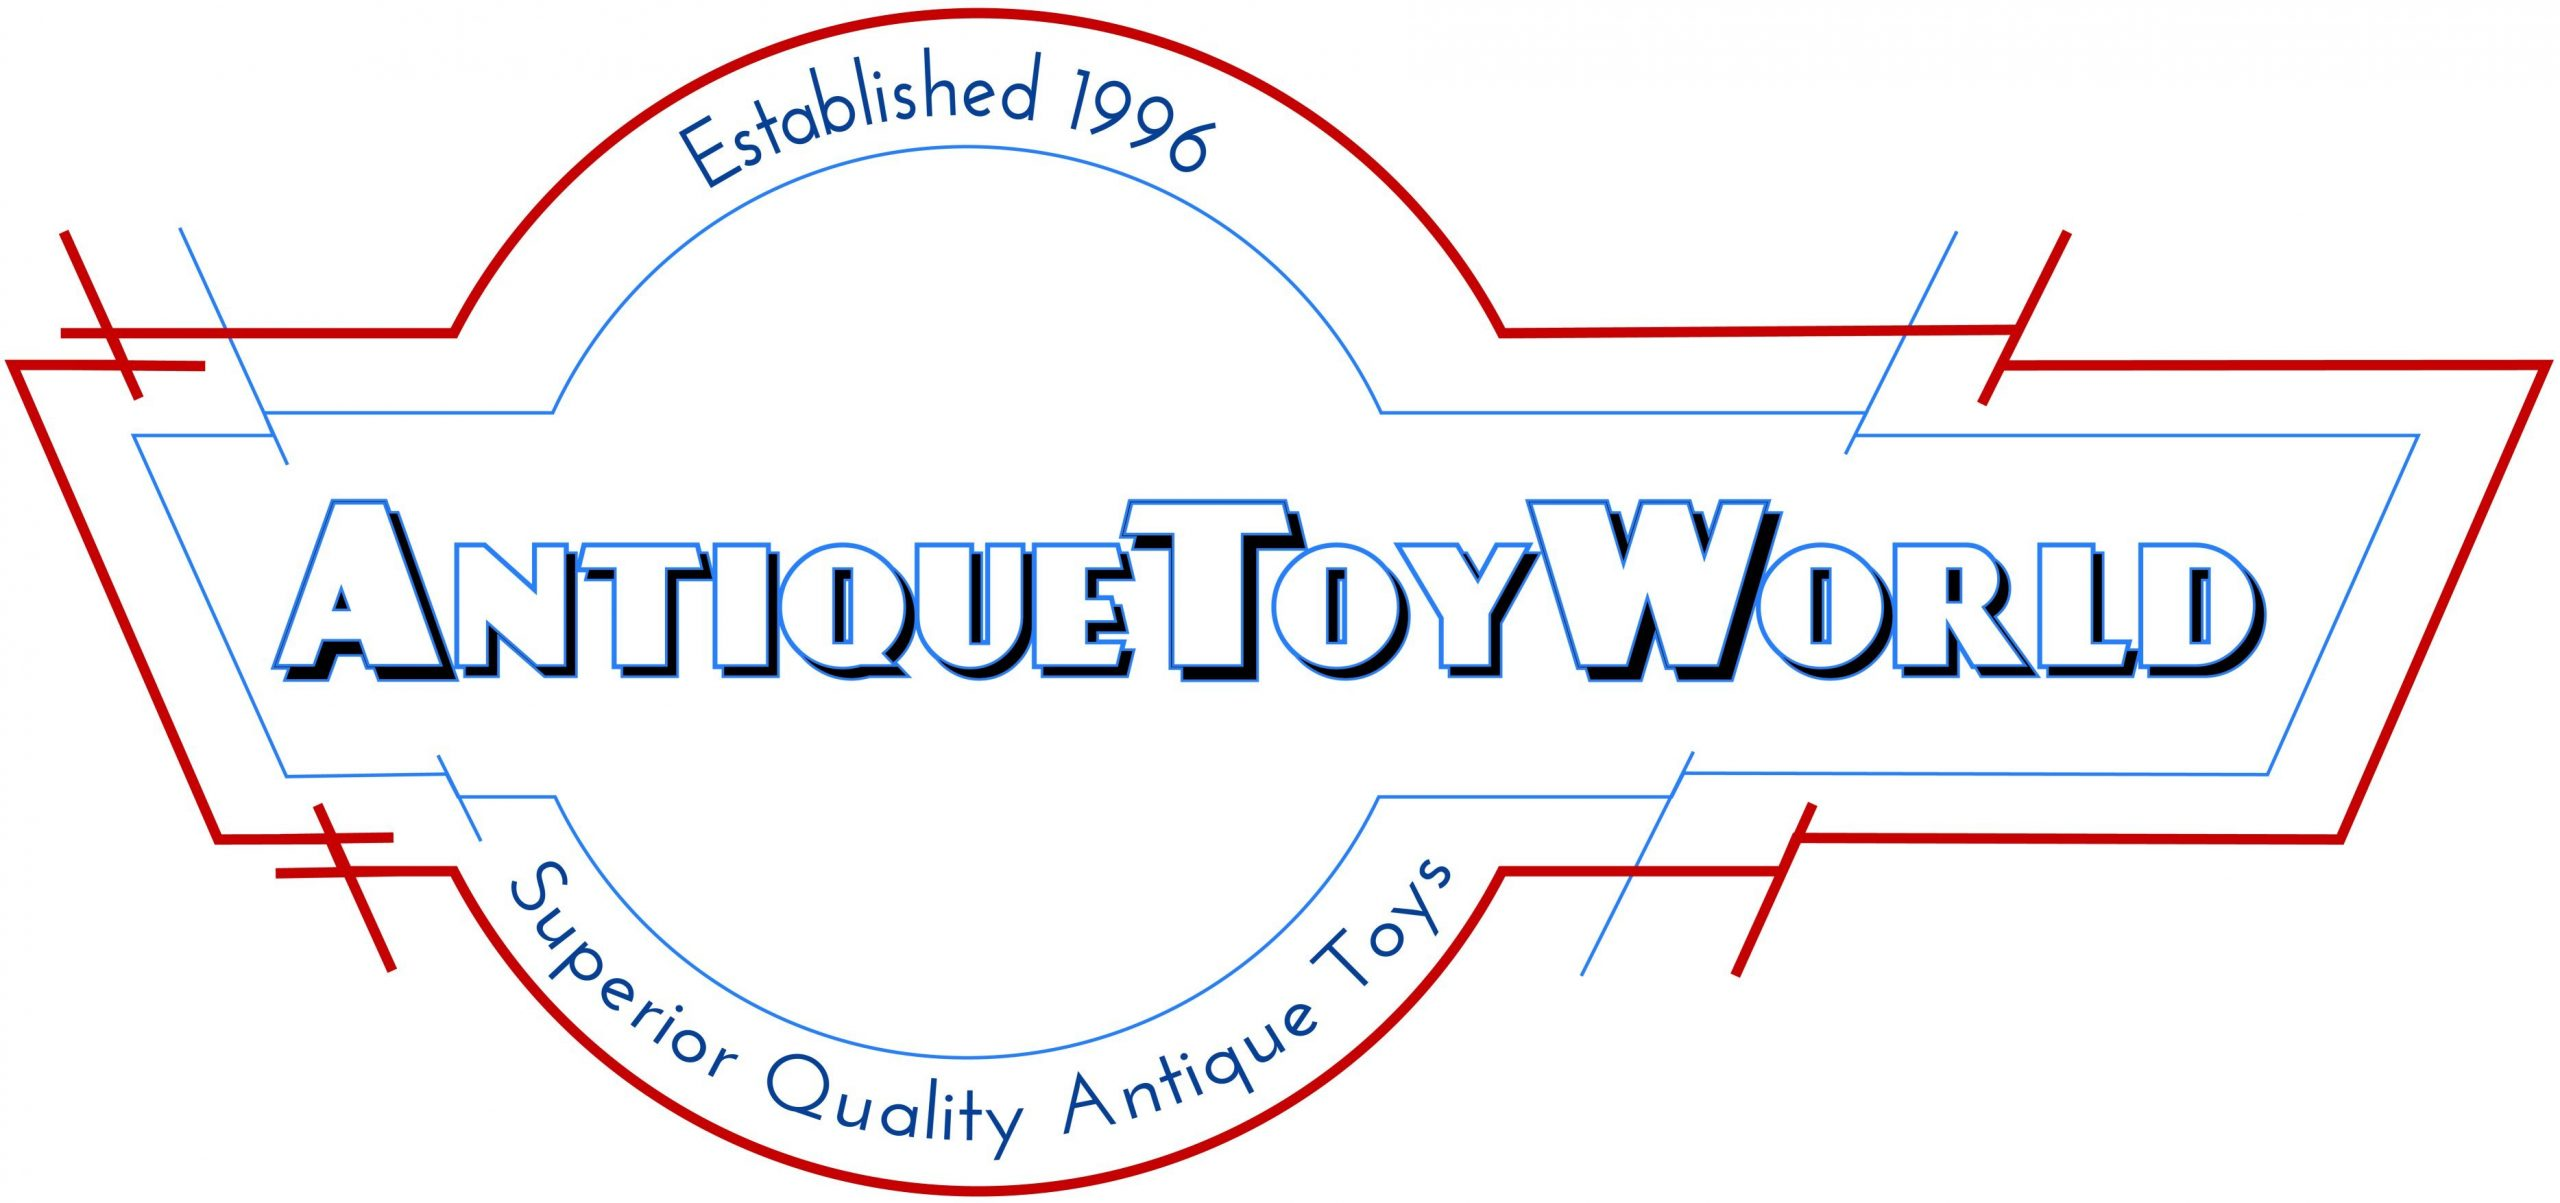 Antique Toy World : Toys from the Past